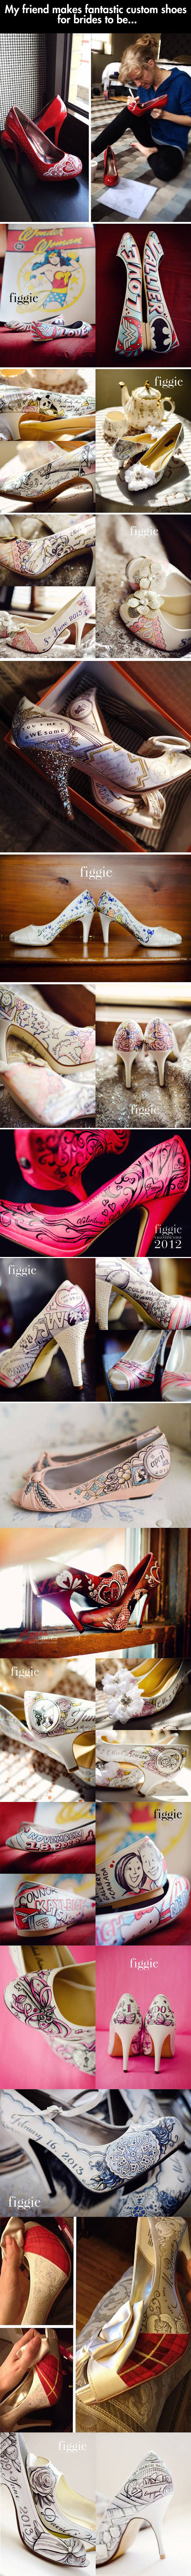 Stunning Customized Shoes